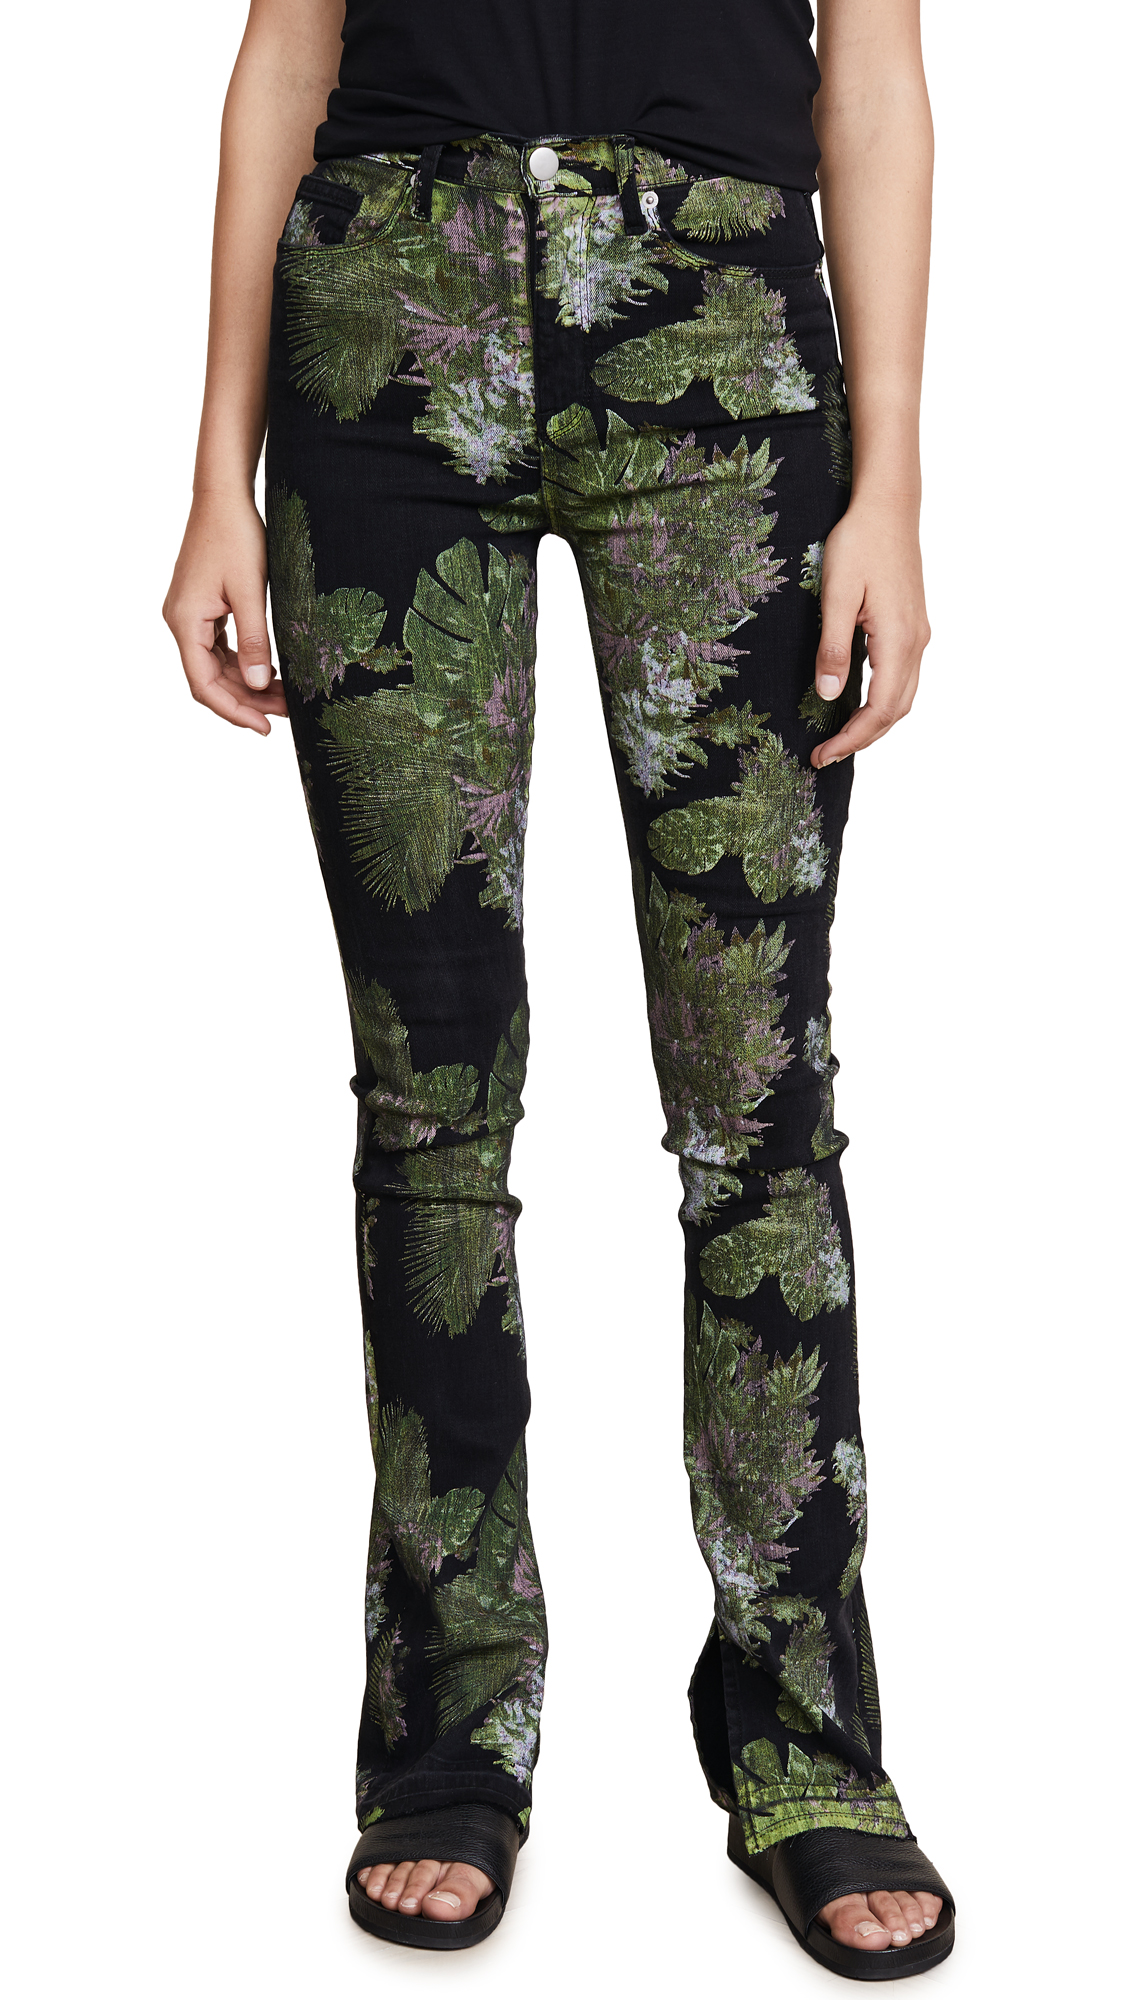 Hudson x Baja East Heartbreaker High Rise Bootcut Jeans In Baja East Weed